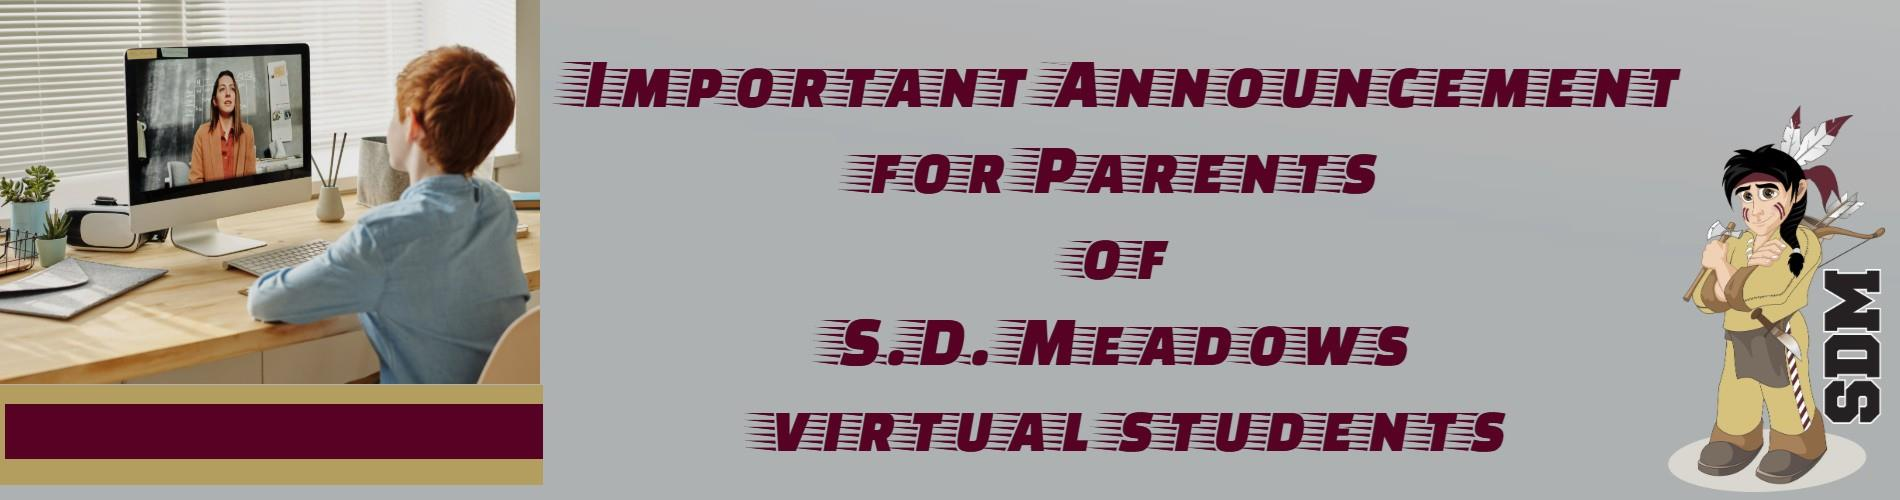 Announcement for SD Meadows Virtual Students